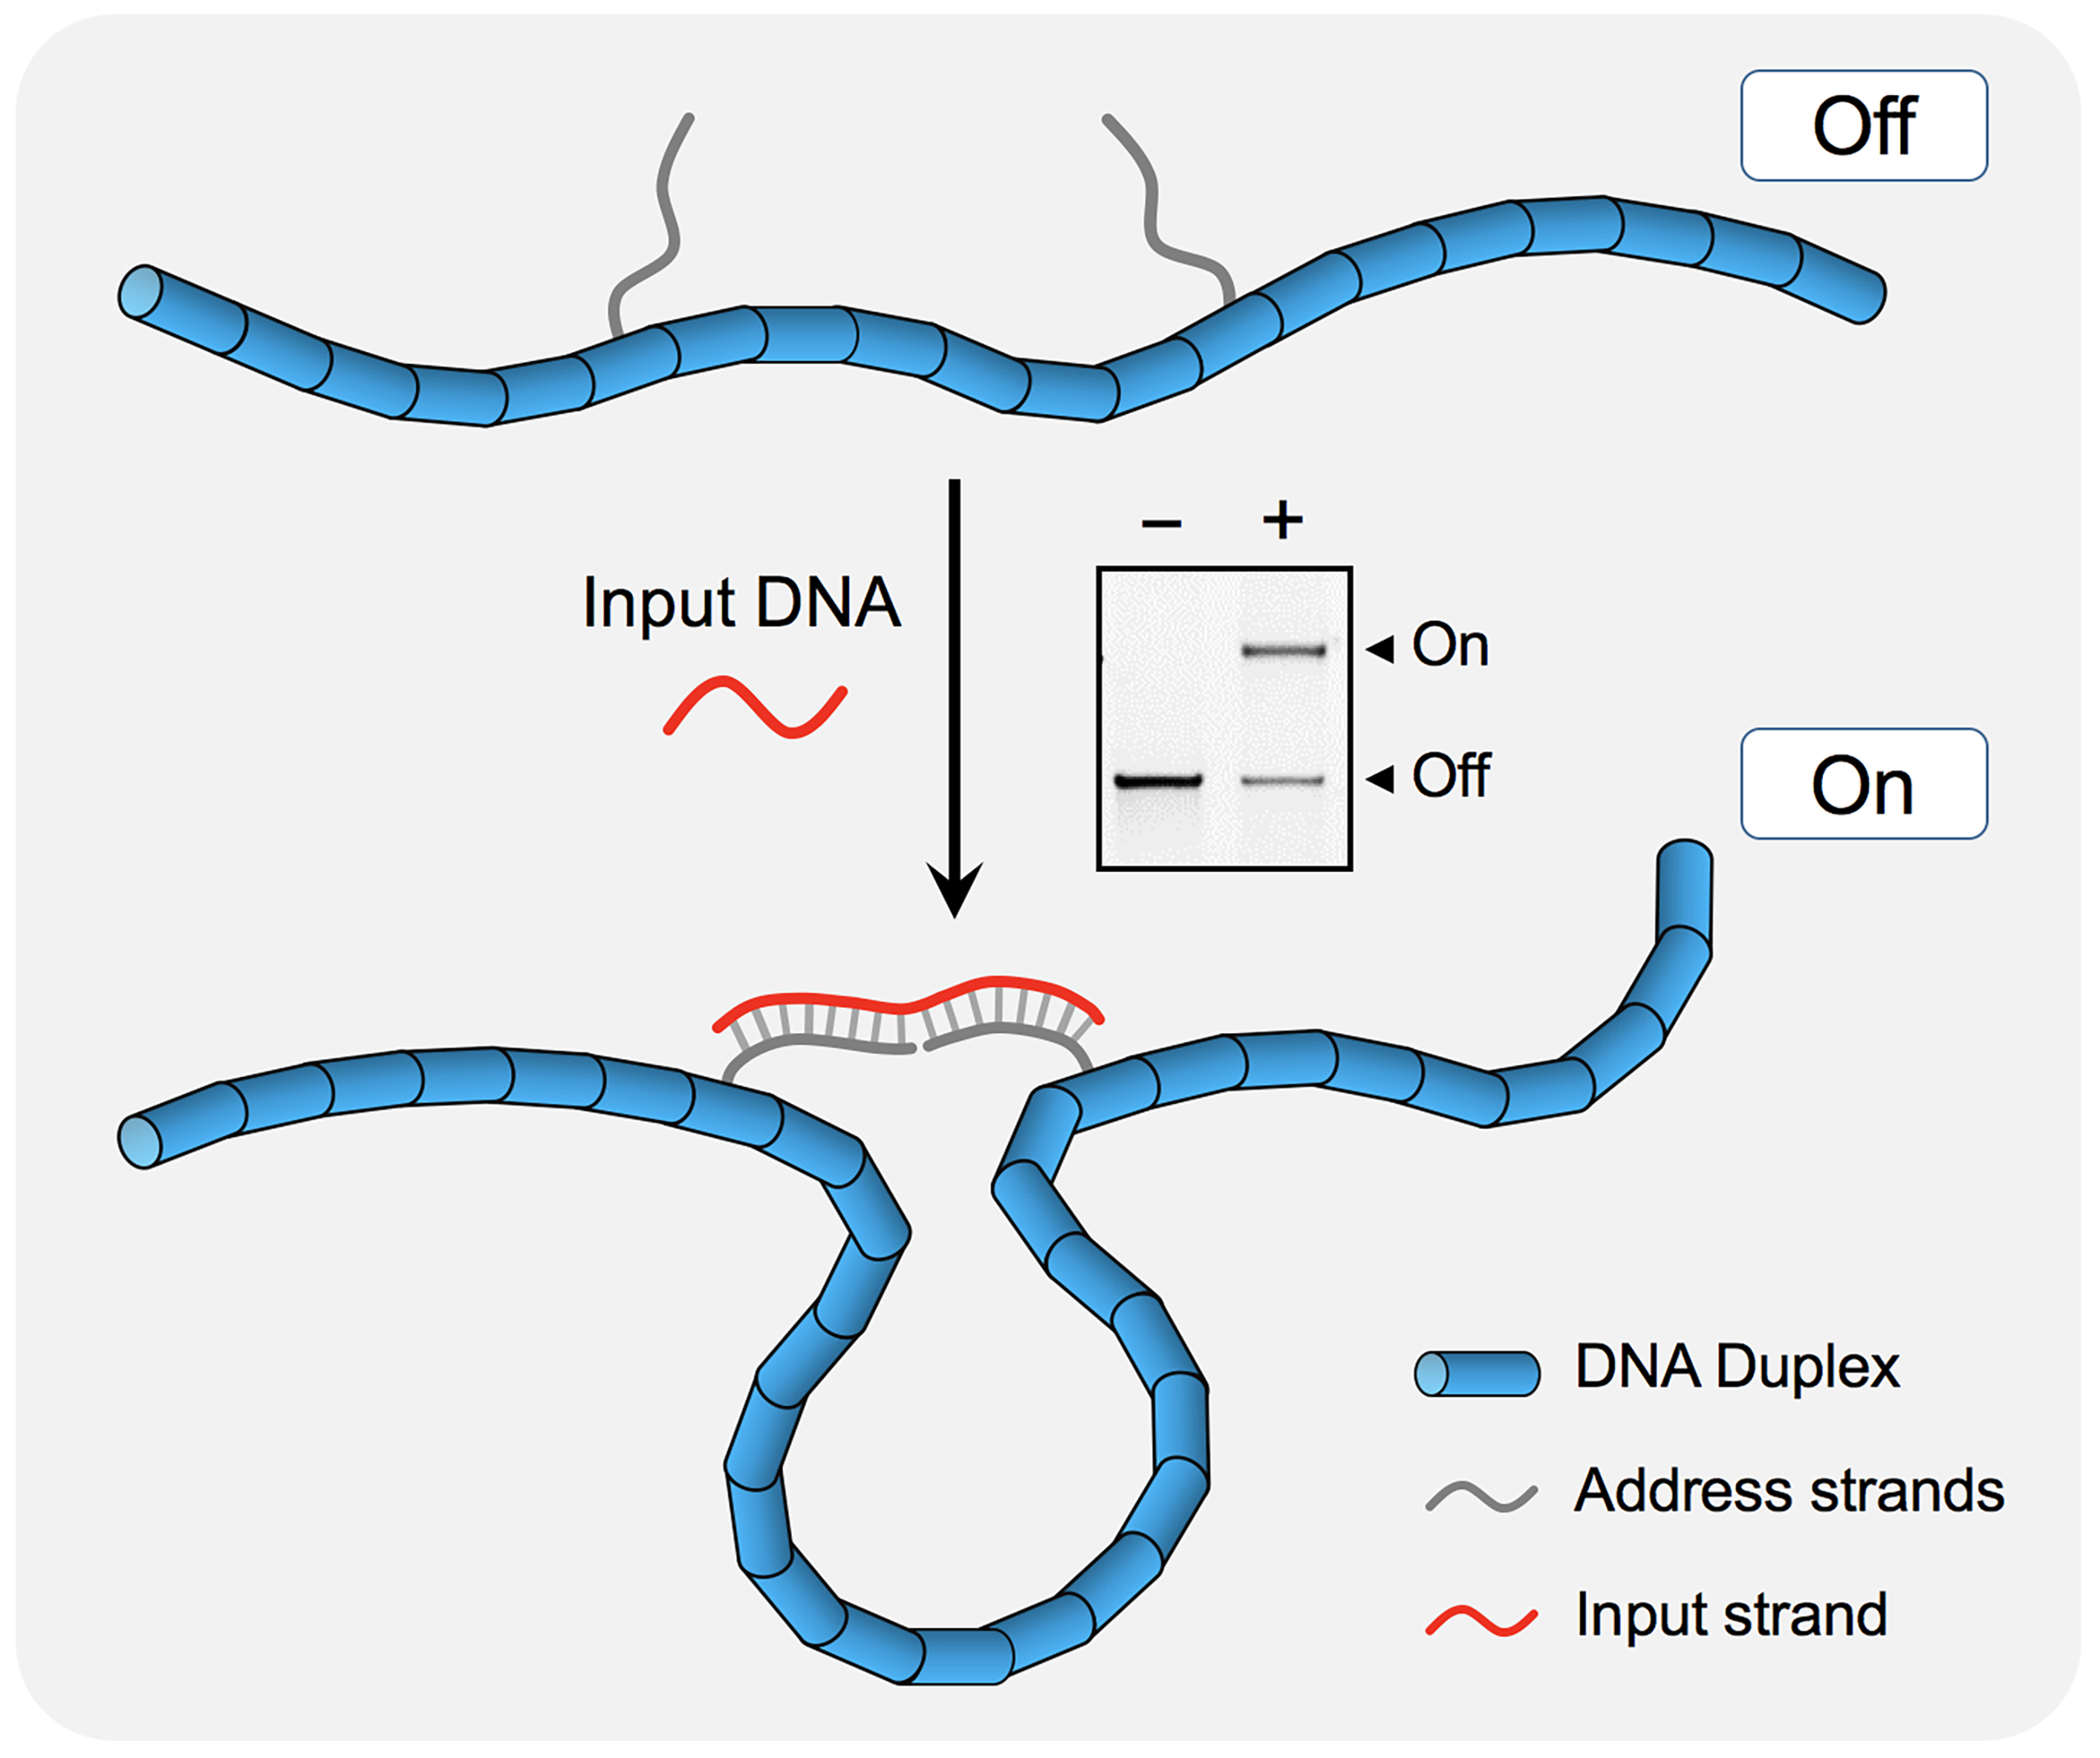 The nanoswitch is a long linear duplex with single-straned extensions acting as  address  strands. On binding a complementary  input  strand, the nanoswitch changes conformation to a looped state. The  on  and  off  states are easily identifiable on an agarose gel providing a binary readout.